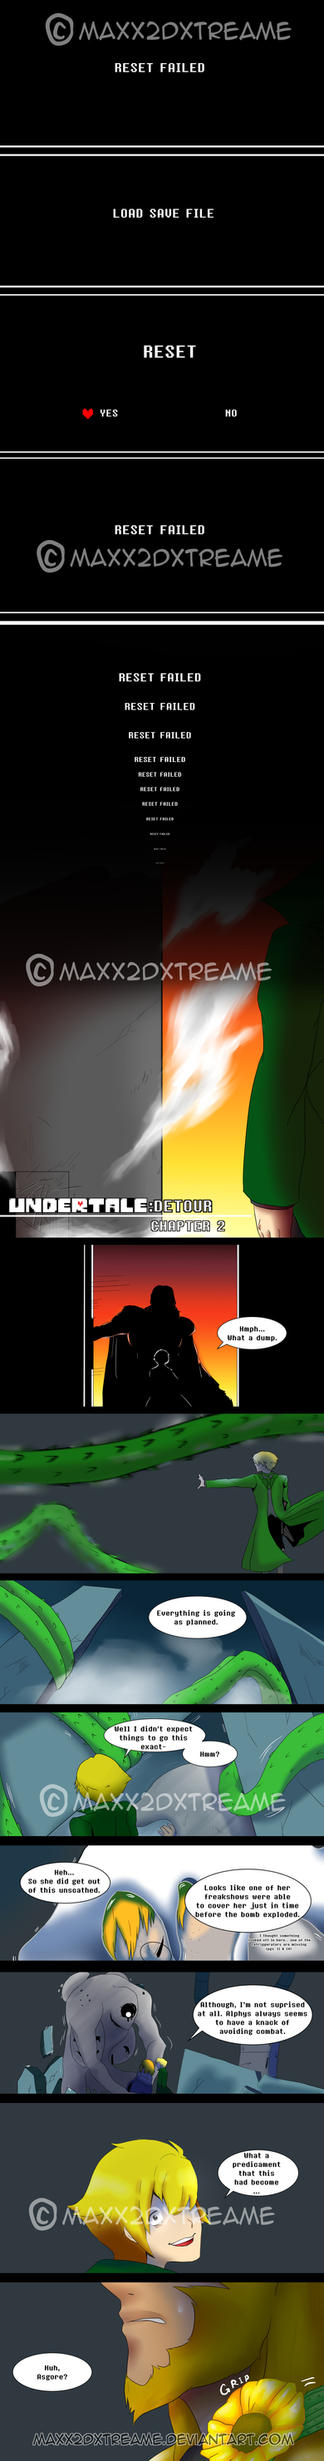 [UNDERTALE] Detour Pg 16 Chapter 2 by Maxx2DXtreame